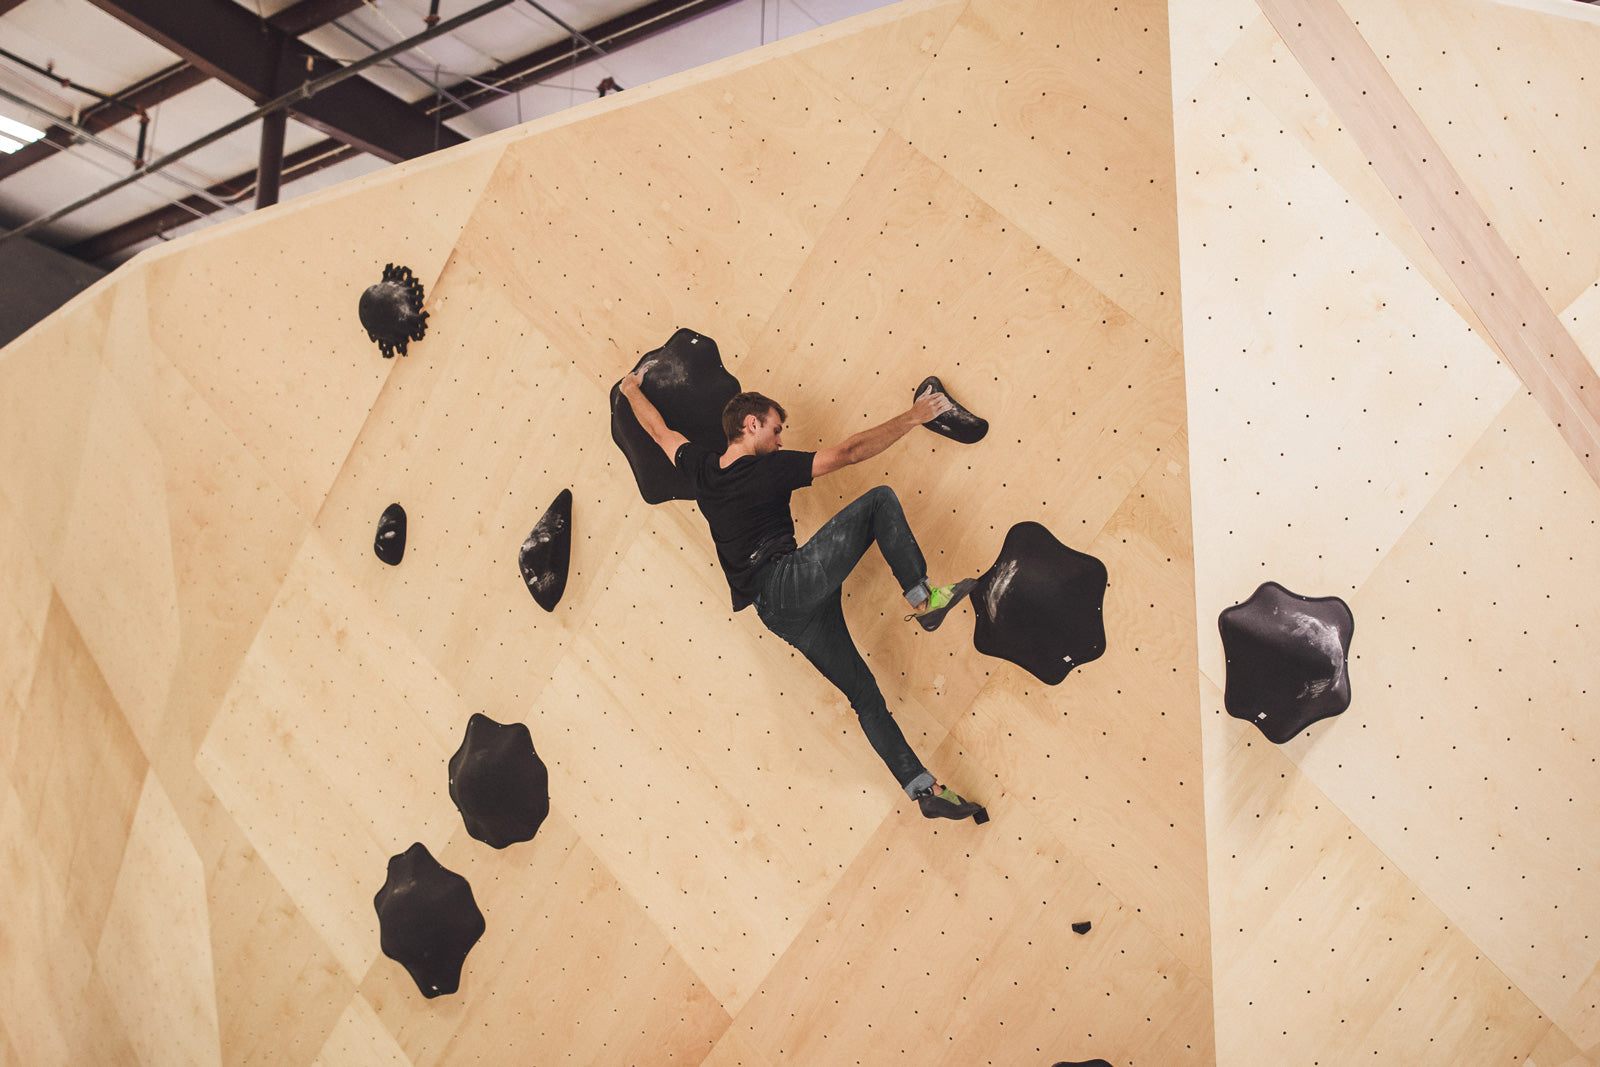 men's so ill climbing denim jeans bouldering in nashville